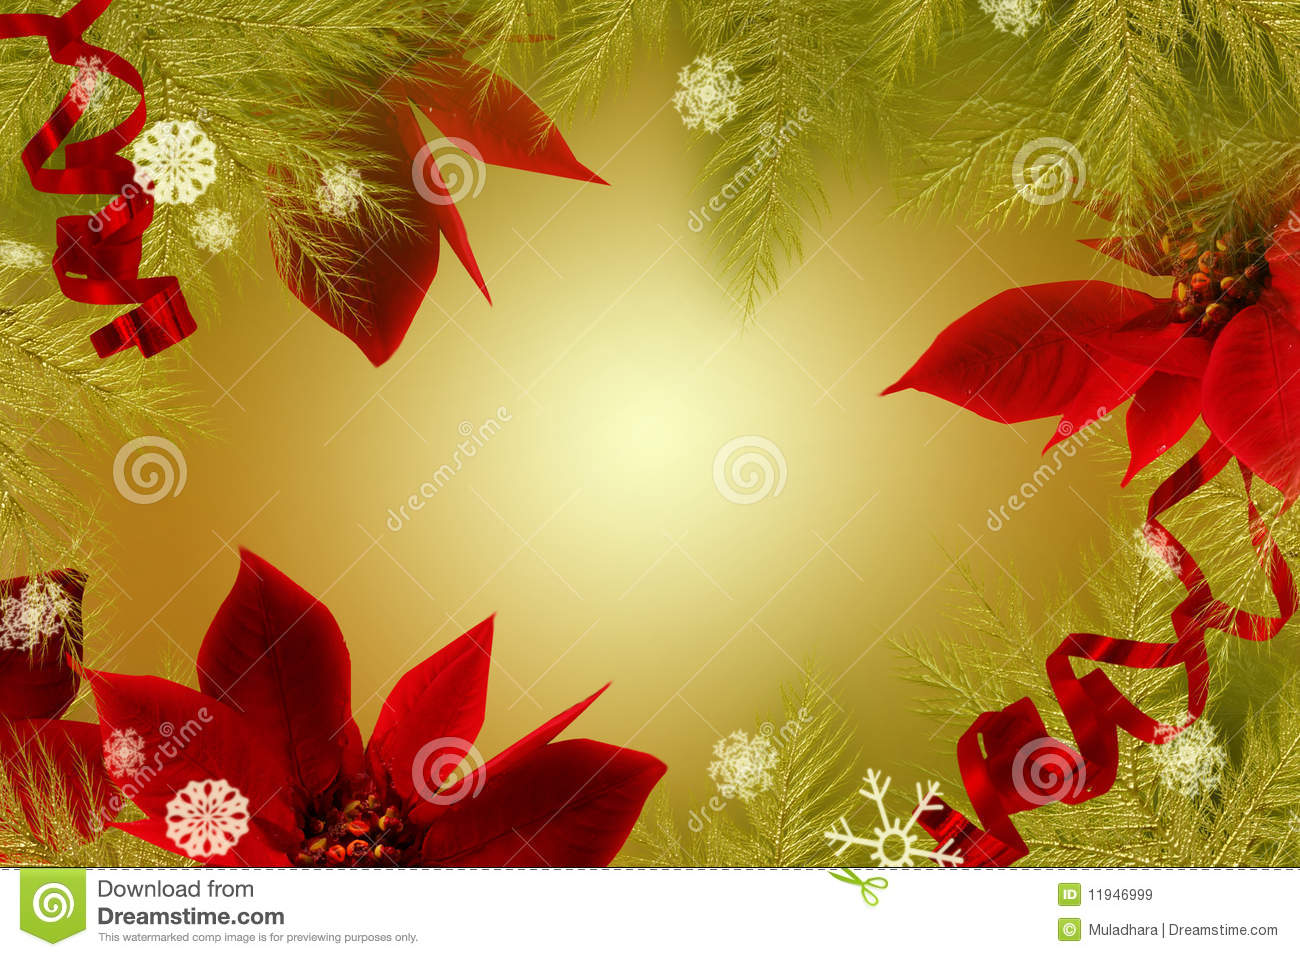 background christmas poinsettia - Christmas Poinsettia